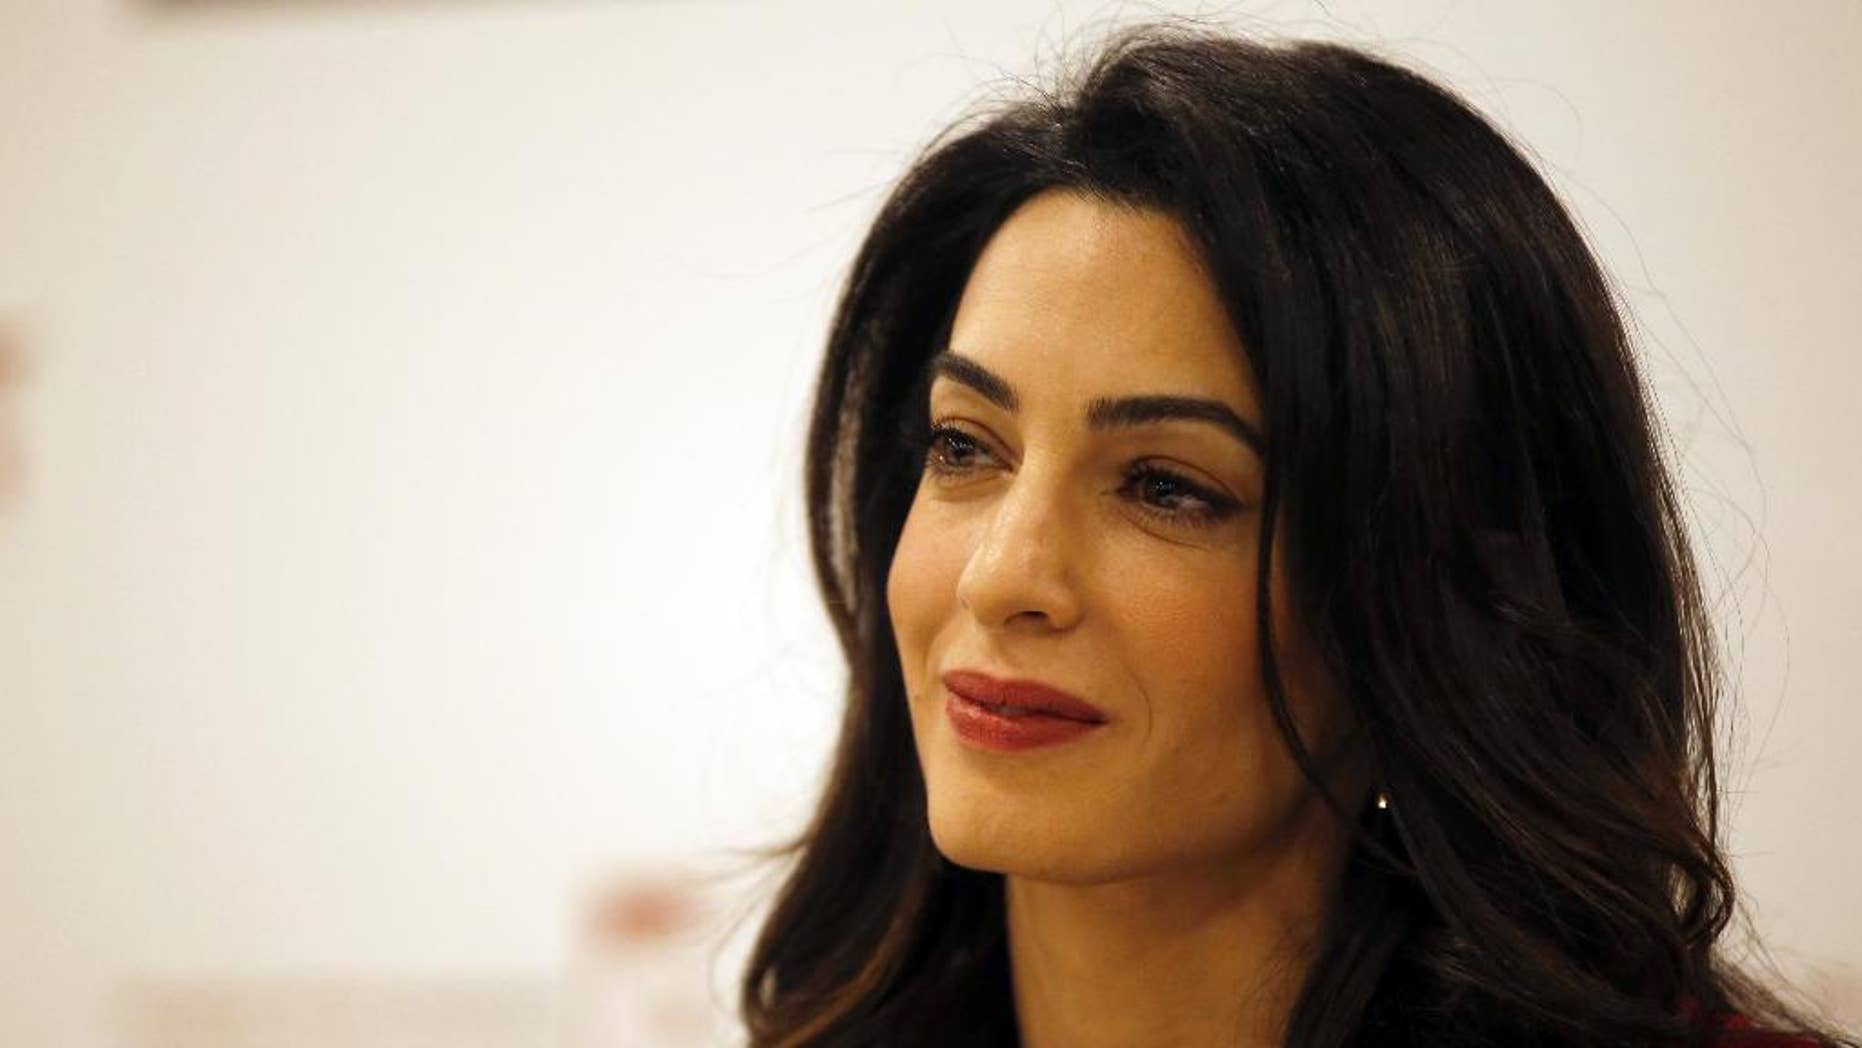 """FILE - In this Jan. 25, 2016, file photo, British lawyer Amal Clooney attends a press conference with former Maldives president Mohamed Nasheed in London. Clooney  is pushing for the United Nations to investigate and prosecute Islamic State commanders for genocide. Clooney wants IS leaders tried over the killings. The British lawyer appeared on NBC's """"Today"""" show in an interview broadcast Monday, Sept. 19, 2016, alongside 23-year-old Nadia Murad, a Yazidi woman who escaped after being captured by IS in 2014. (AP Photo/Alastair Grant, File)"""